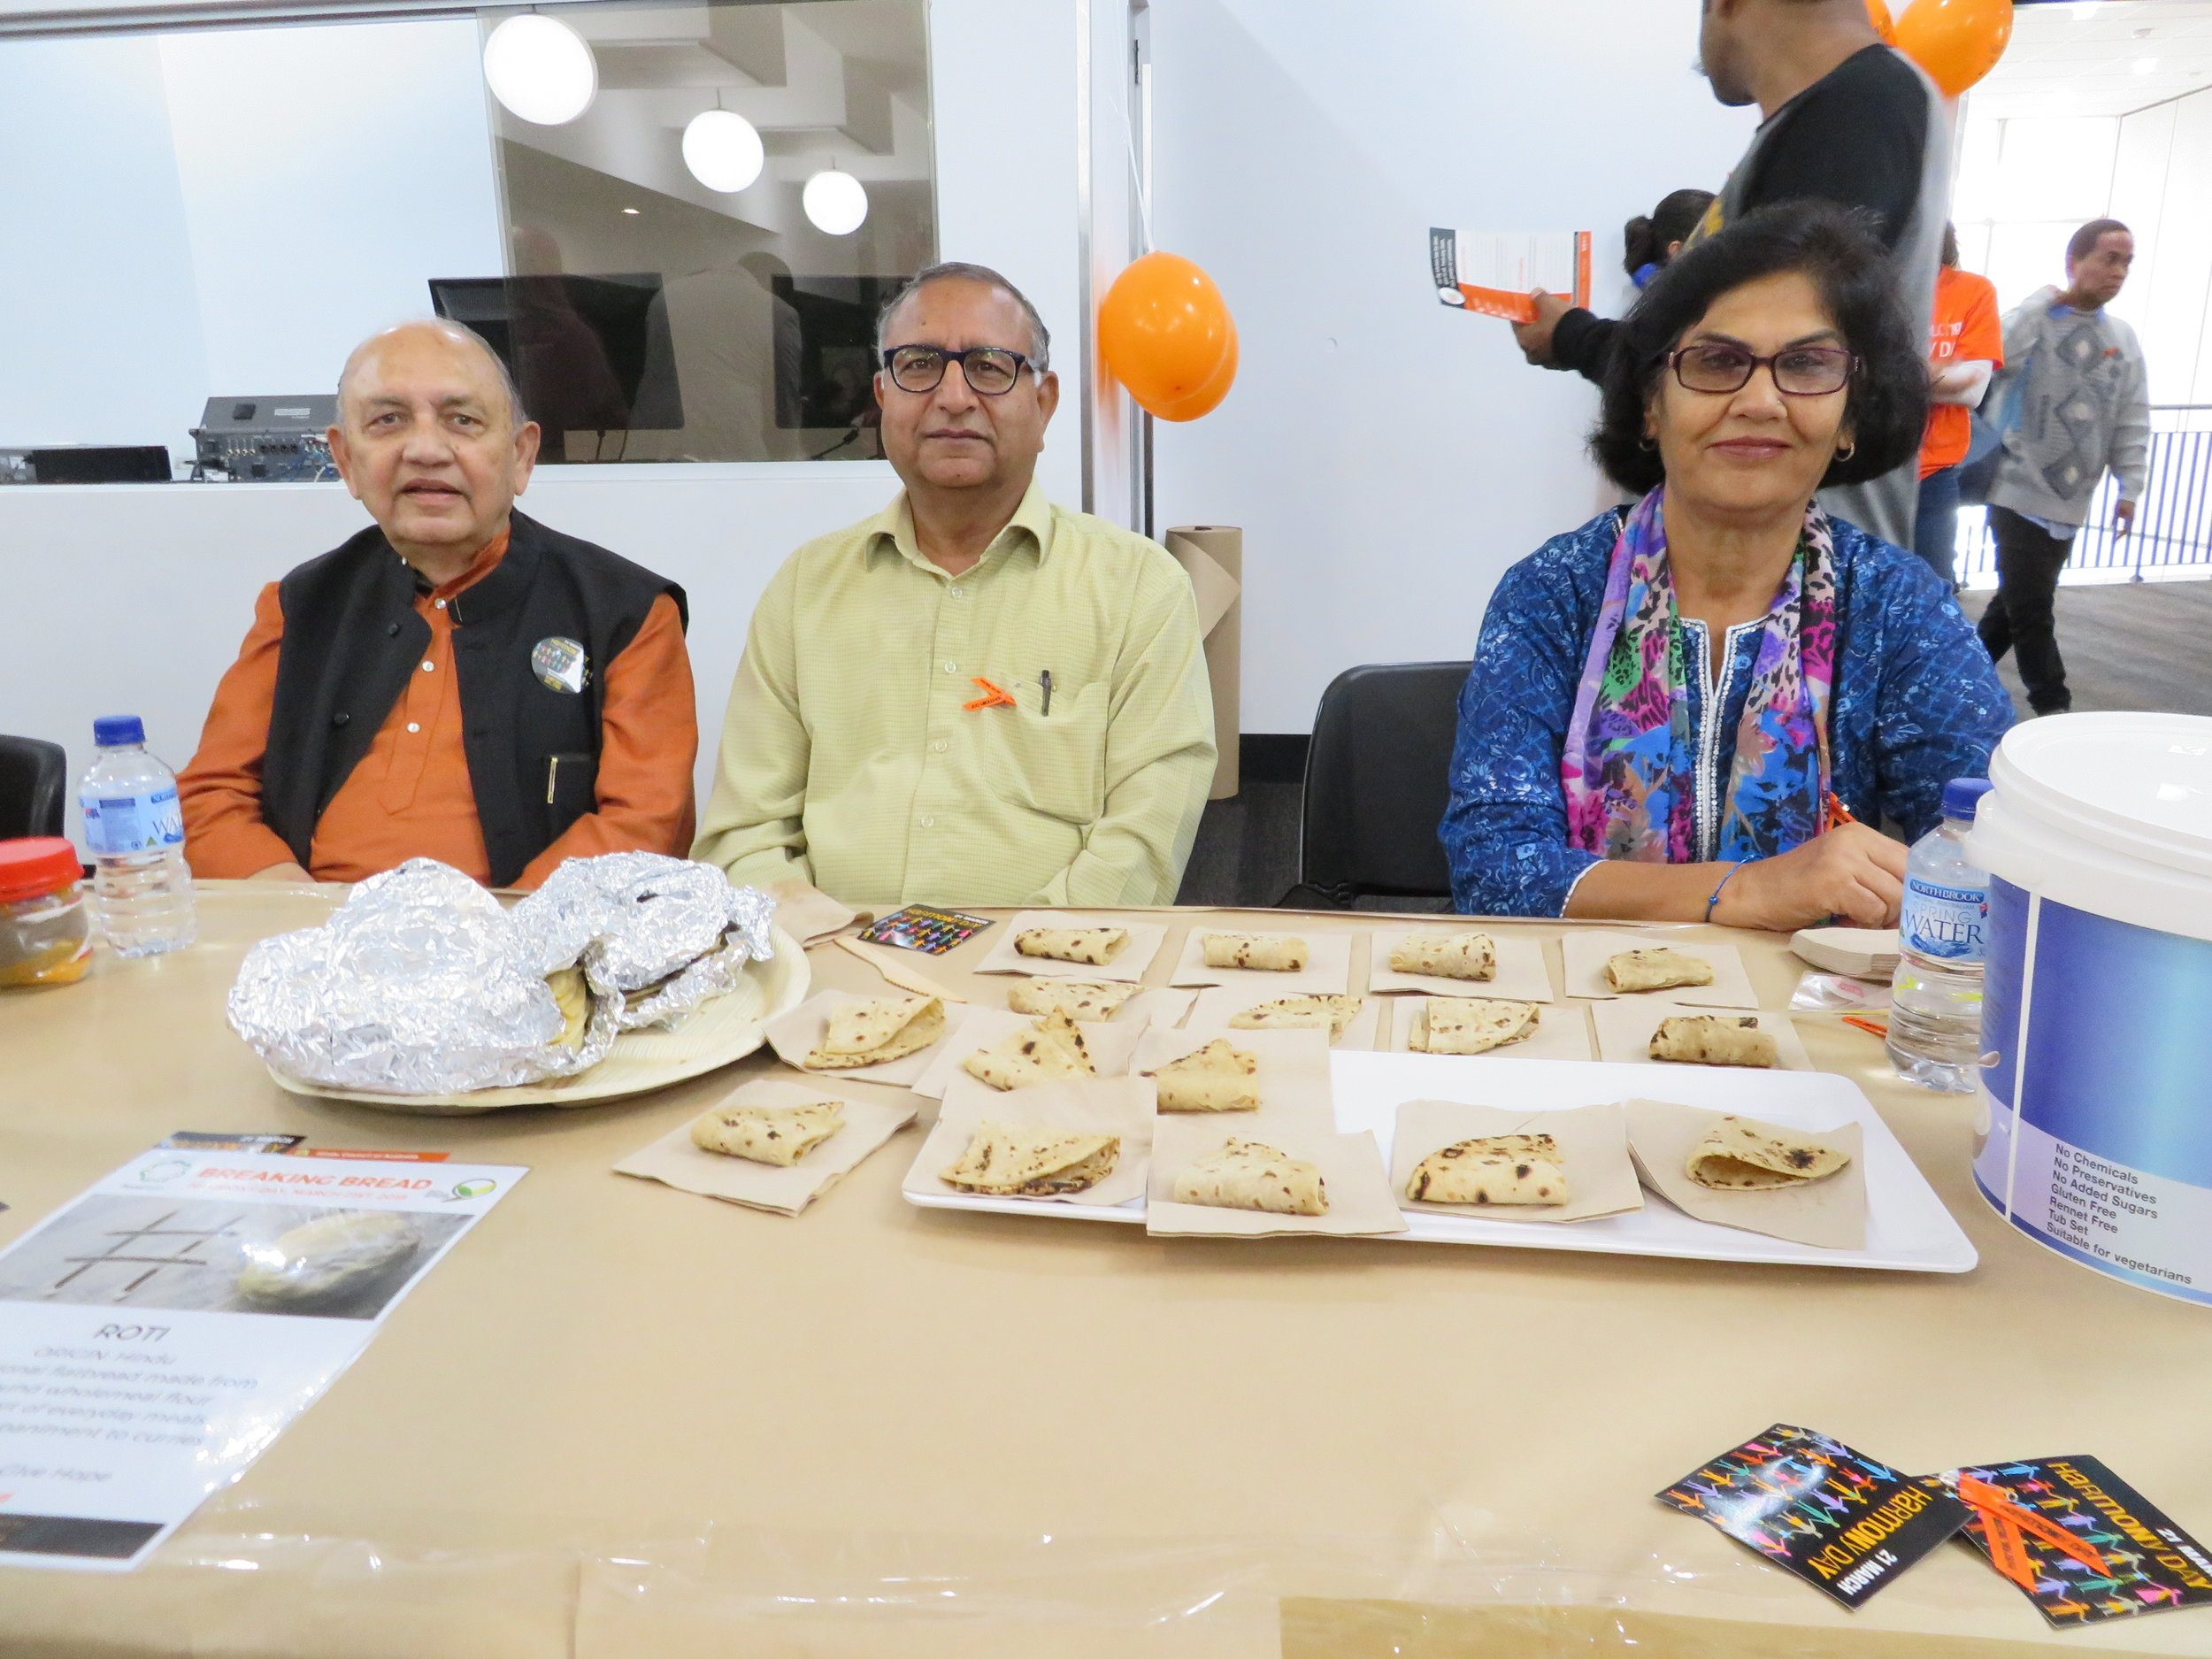 Members of the Hindu Council of Australia and Let's Give Hope. Image courtesy of Naomi Shore